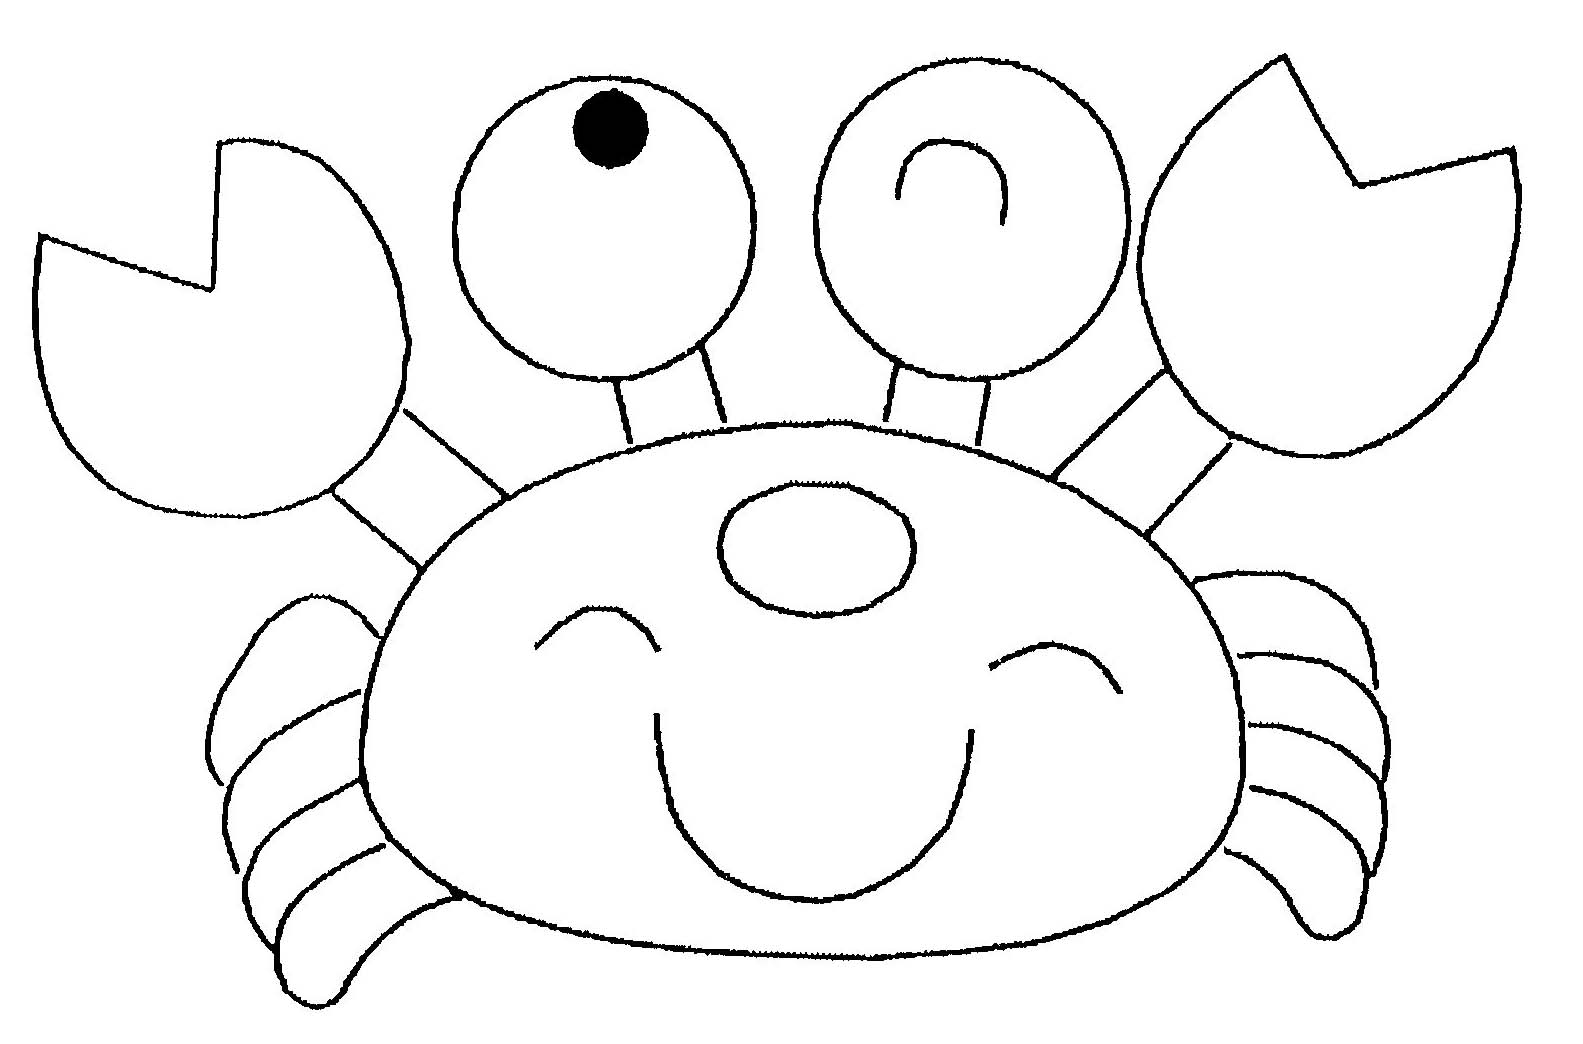 Coloriage Crabe Dauphin.Coloriage Crabe